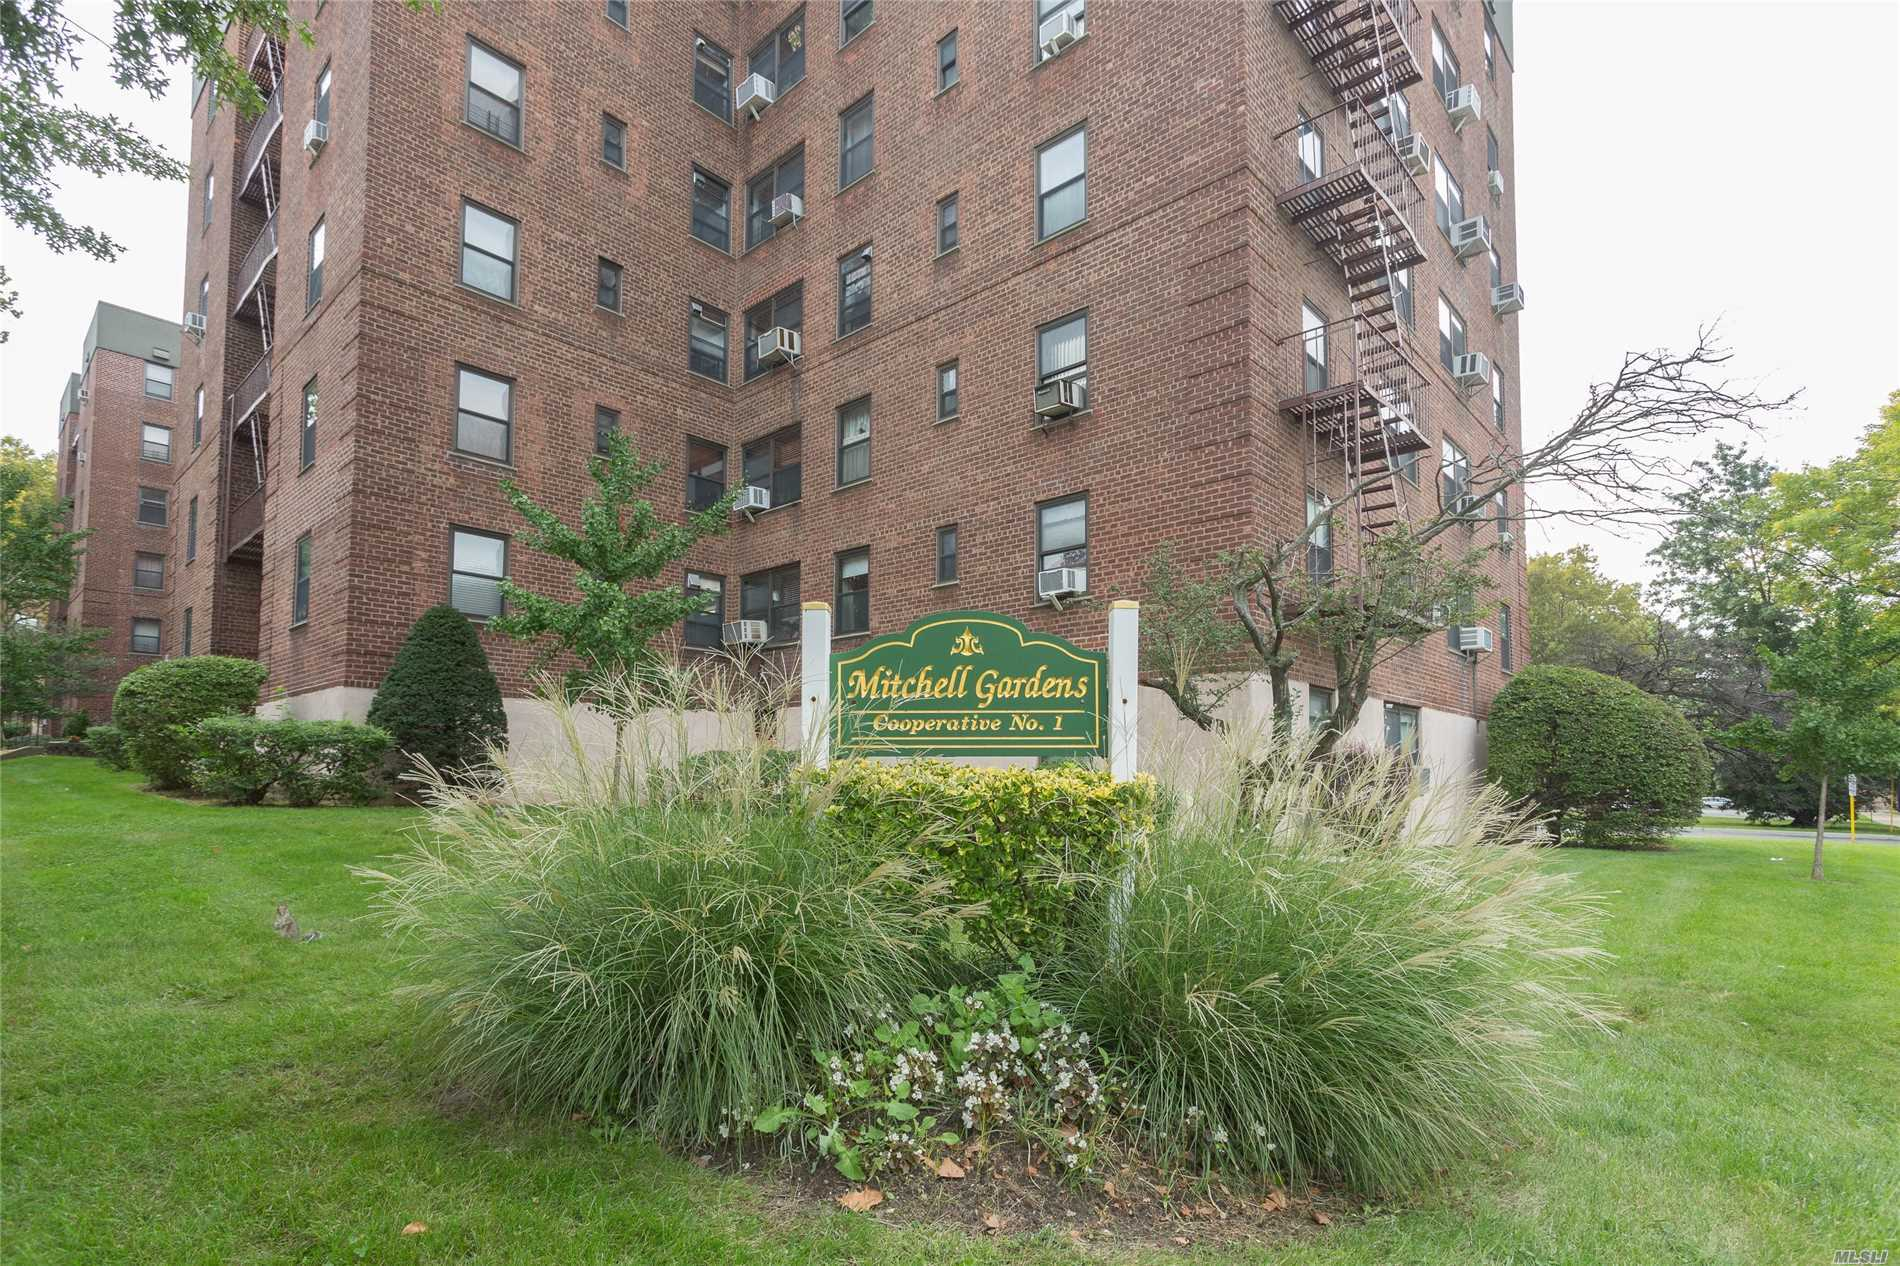 Location Location Location. Bright 1 Bedroom, 1 Bath Co-Op Located In The Heart Of Flushing. Newly Painted, Hardwood Floors, Ample Closets! Well Maintained Building In A Convenient Location! Outdoor Playground & Sitting Area. Close To Transportation, Library, Shopping, Post Office, Schools And More!